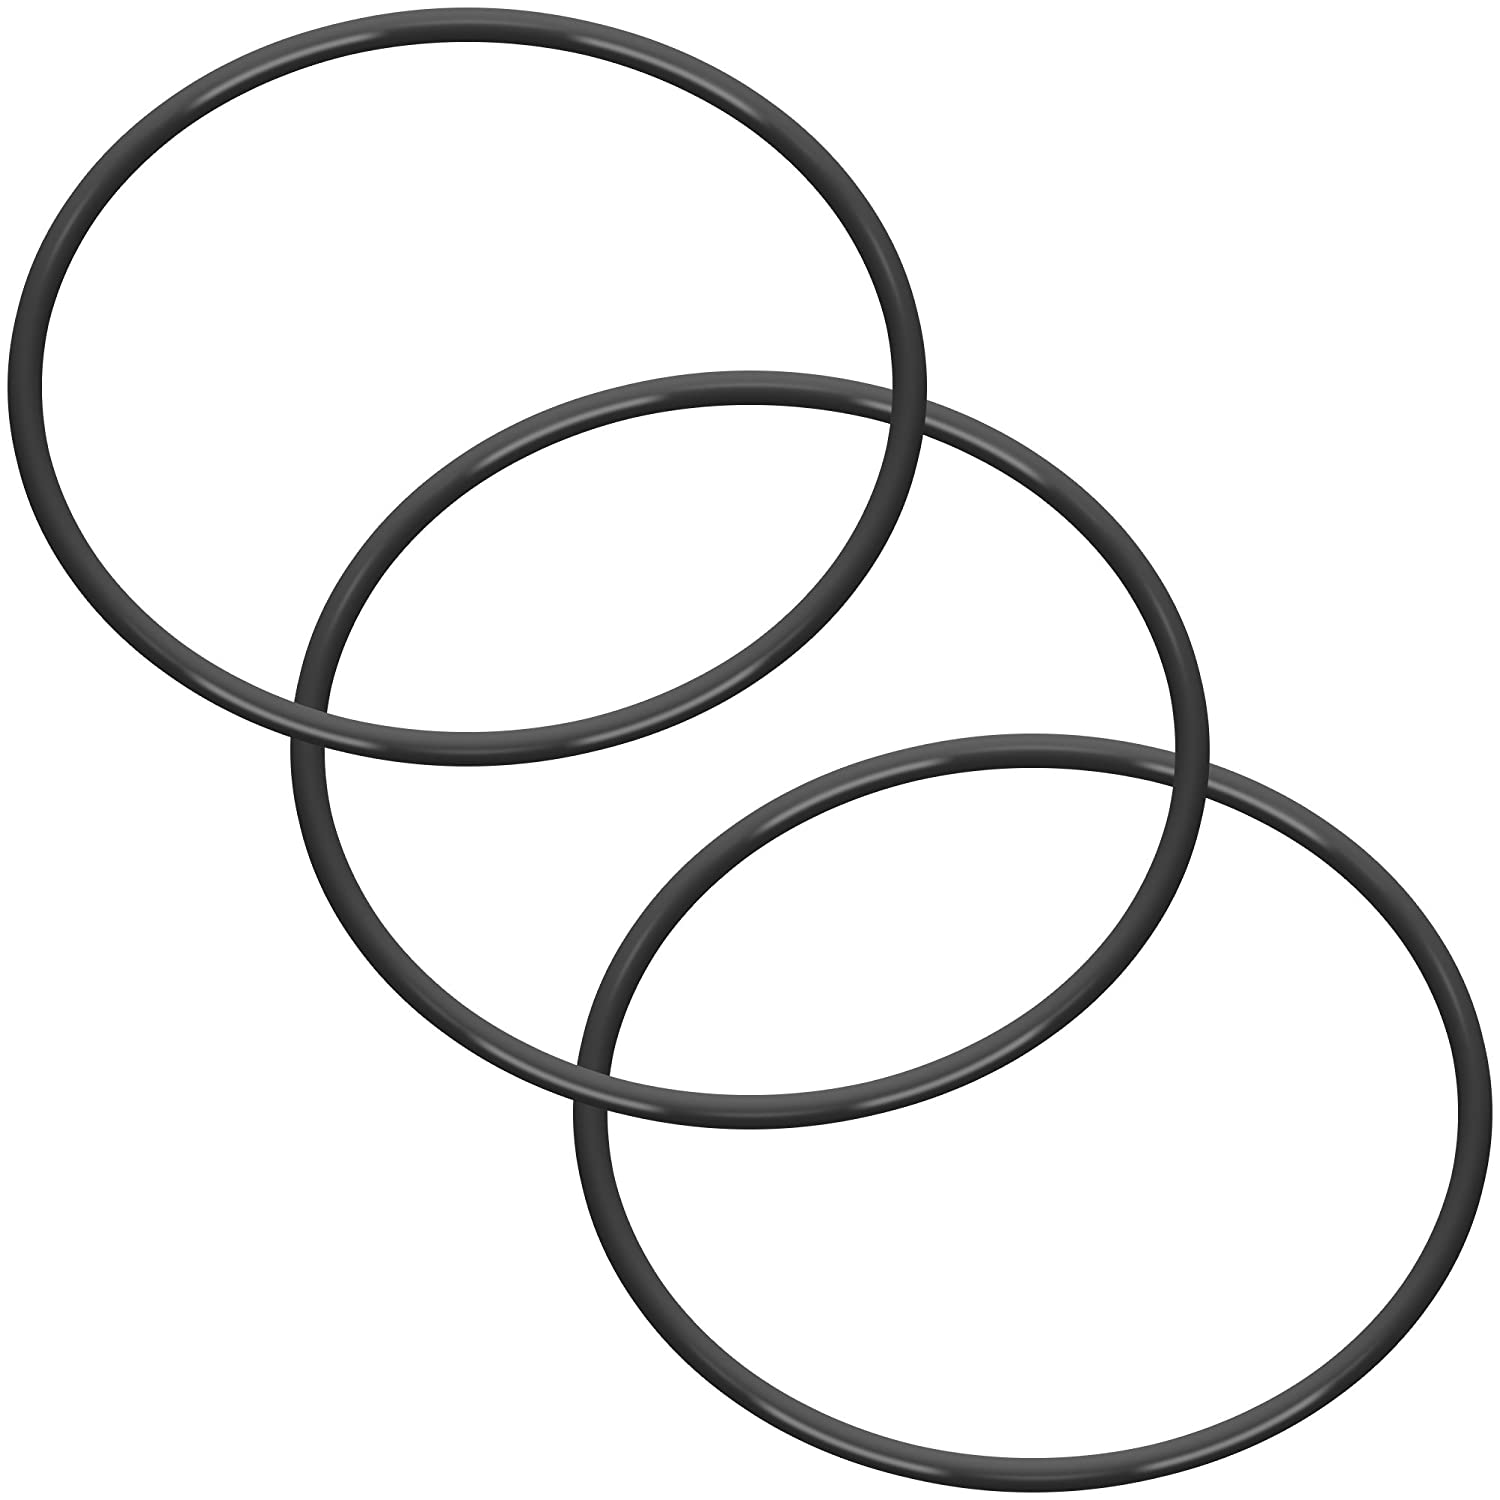 (3 Pack) O-Ring Replacements for Standard 10